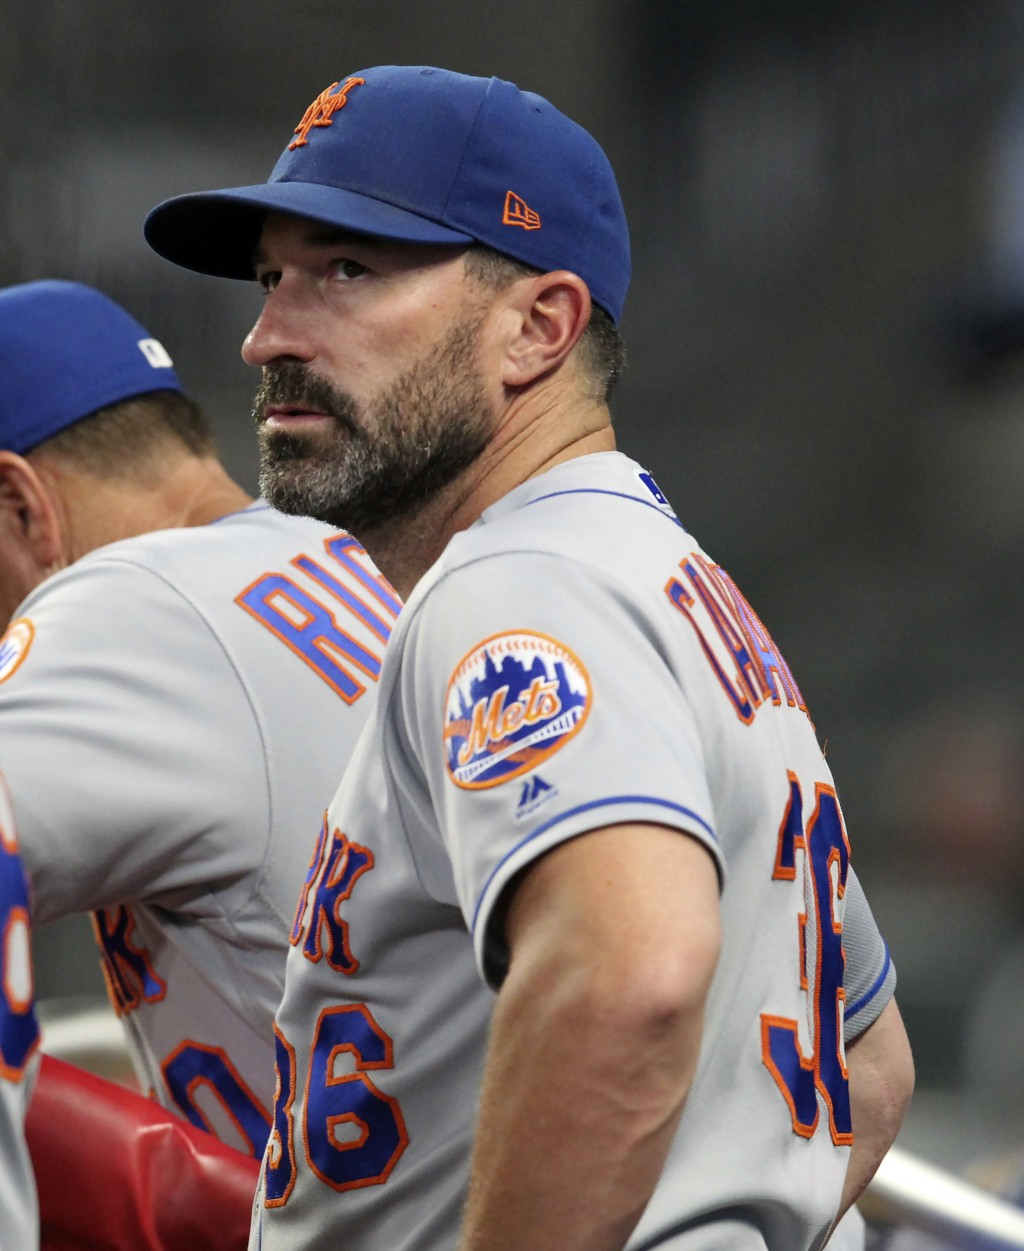 FILE - In this Thursday, Aug. 15, 2019, file photo, then-New York Mets manager Mickey Callaway watches during the eighth inning of a baseball game aga...